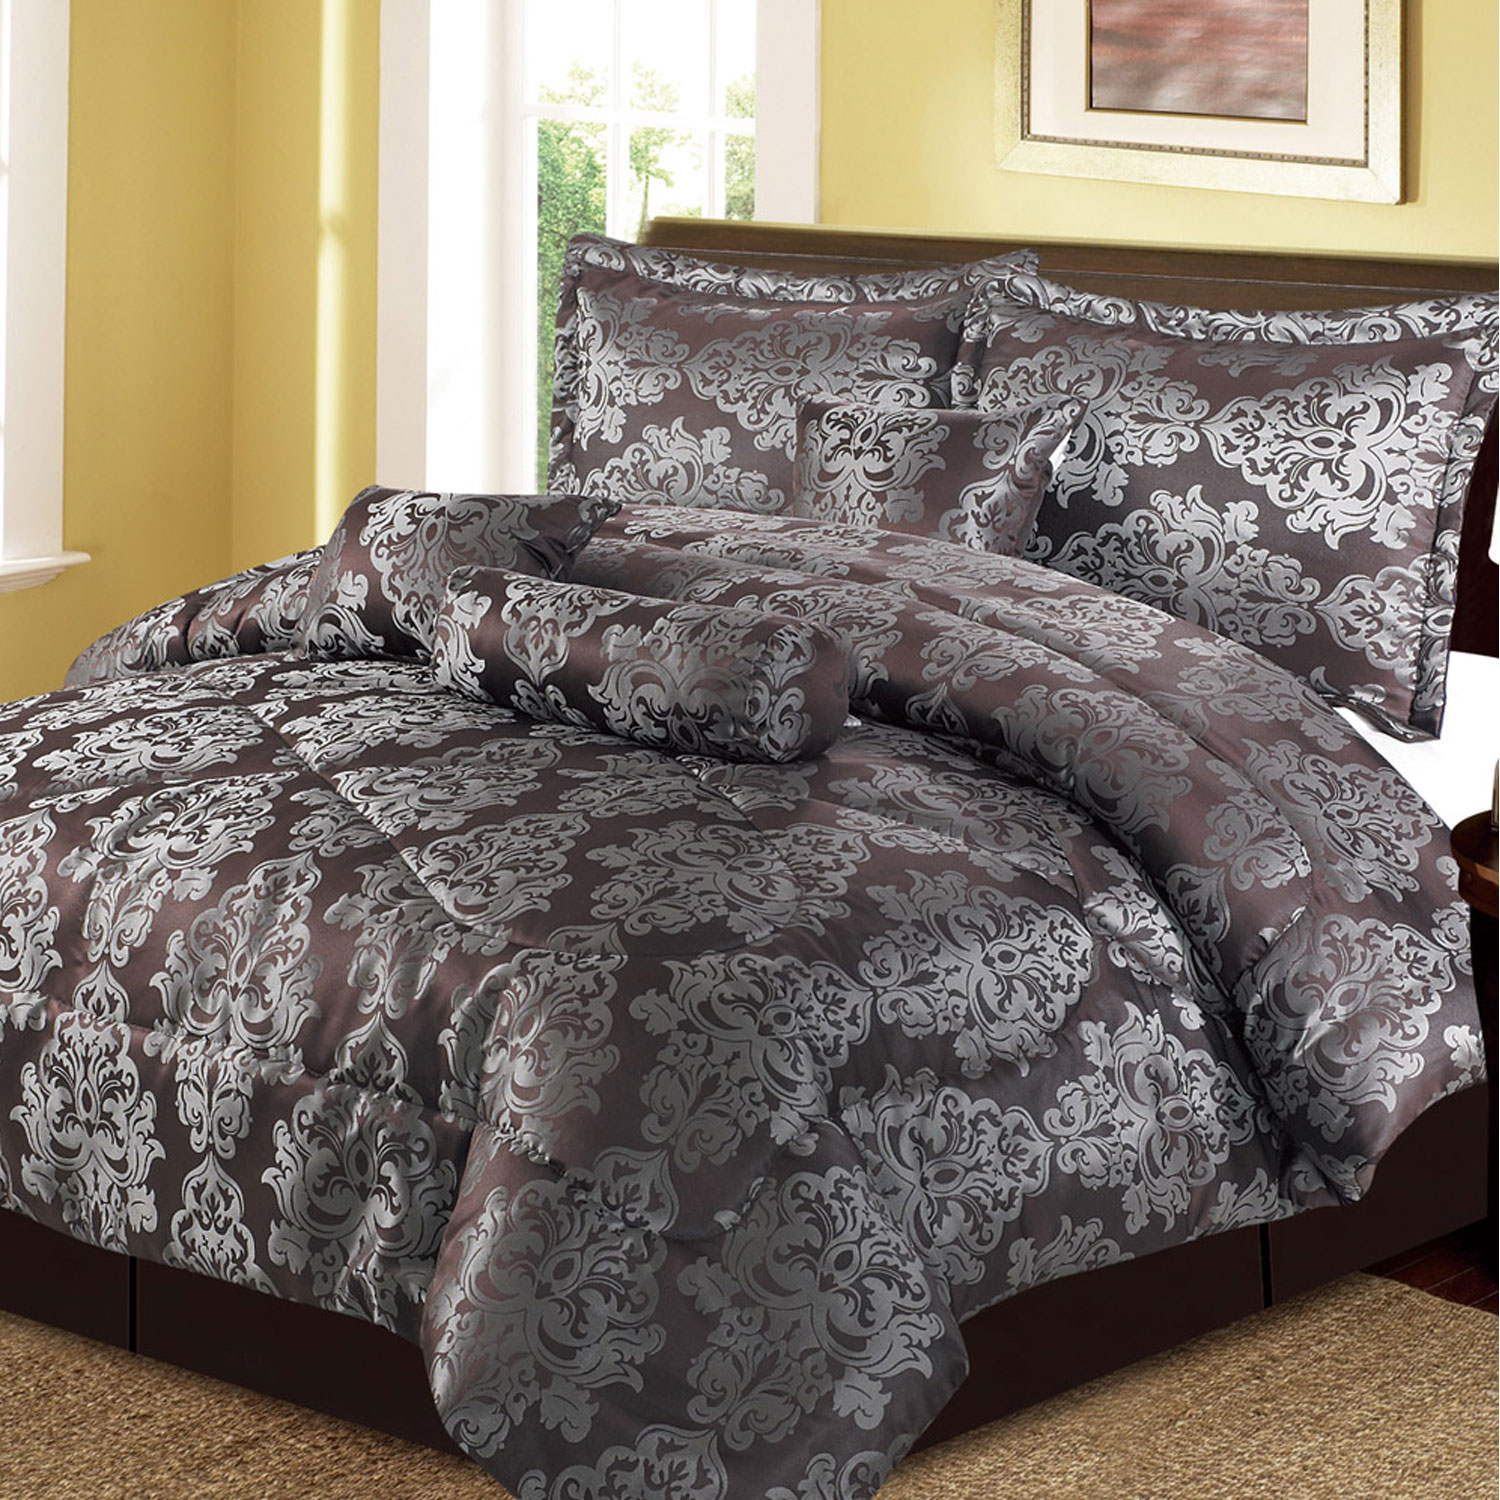 7 Piece Soho Hotel Collection Comforter Set